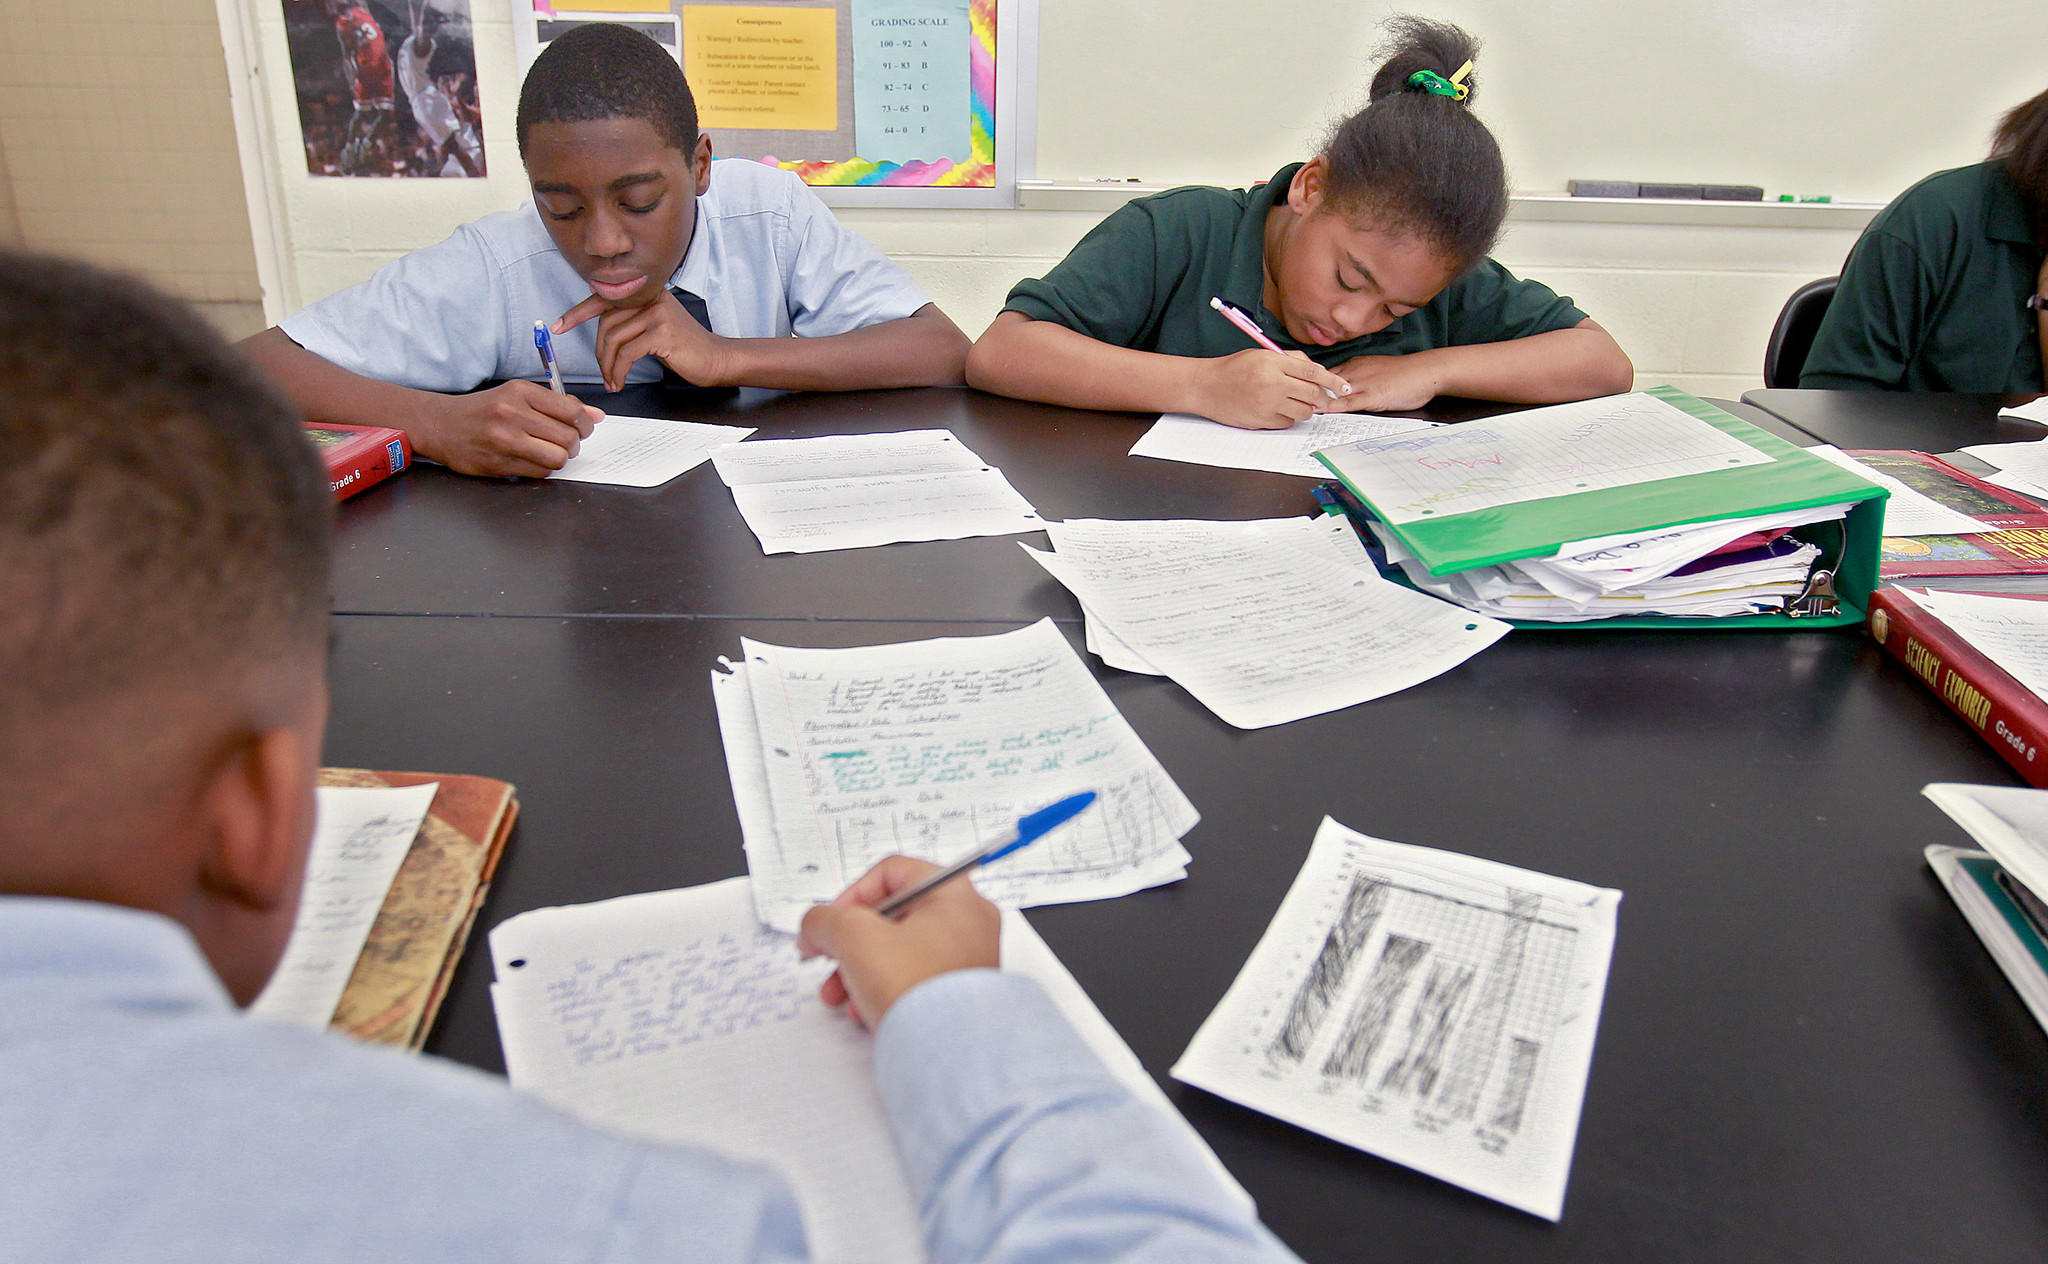 Sixth-grade students Zaiyen Chapman and Ursell Martinez at An Achievable Dream Middle & High School in Newport News work on writing a report on a science experiment that was conducted the previous day.